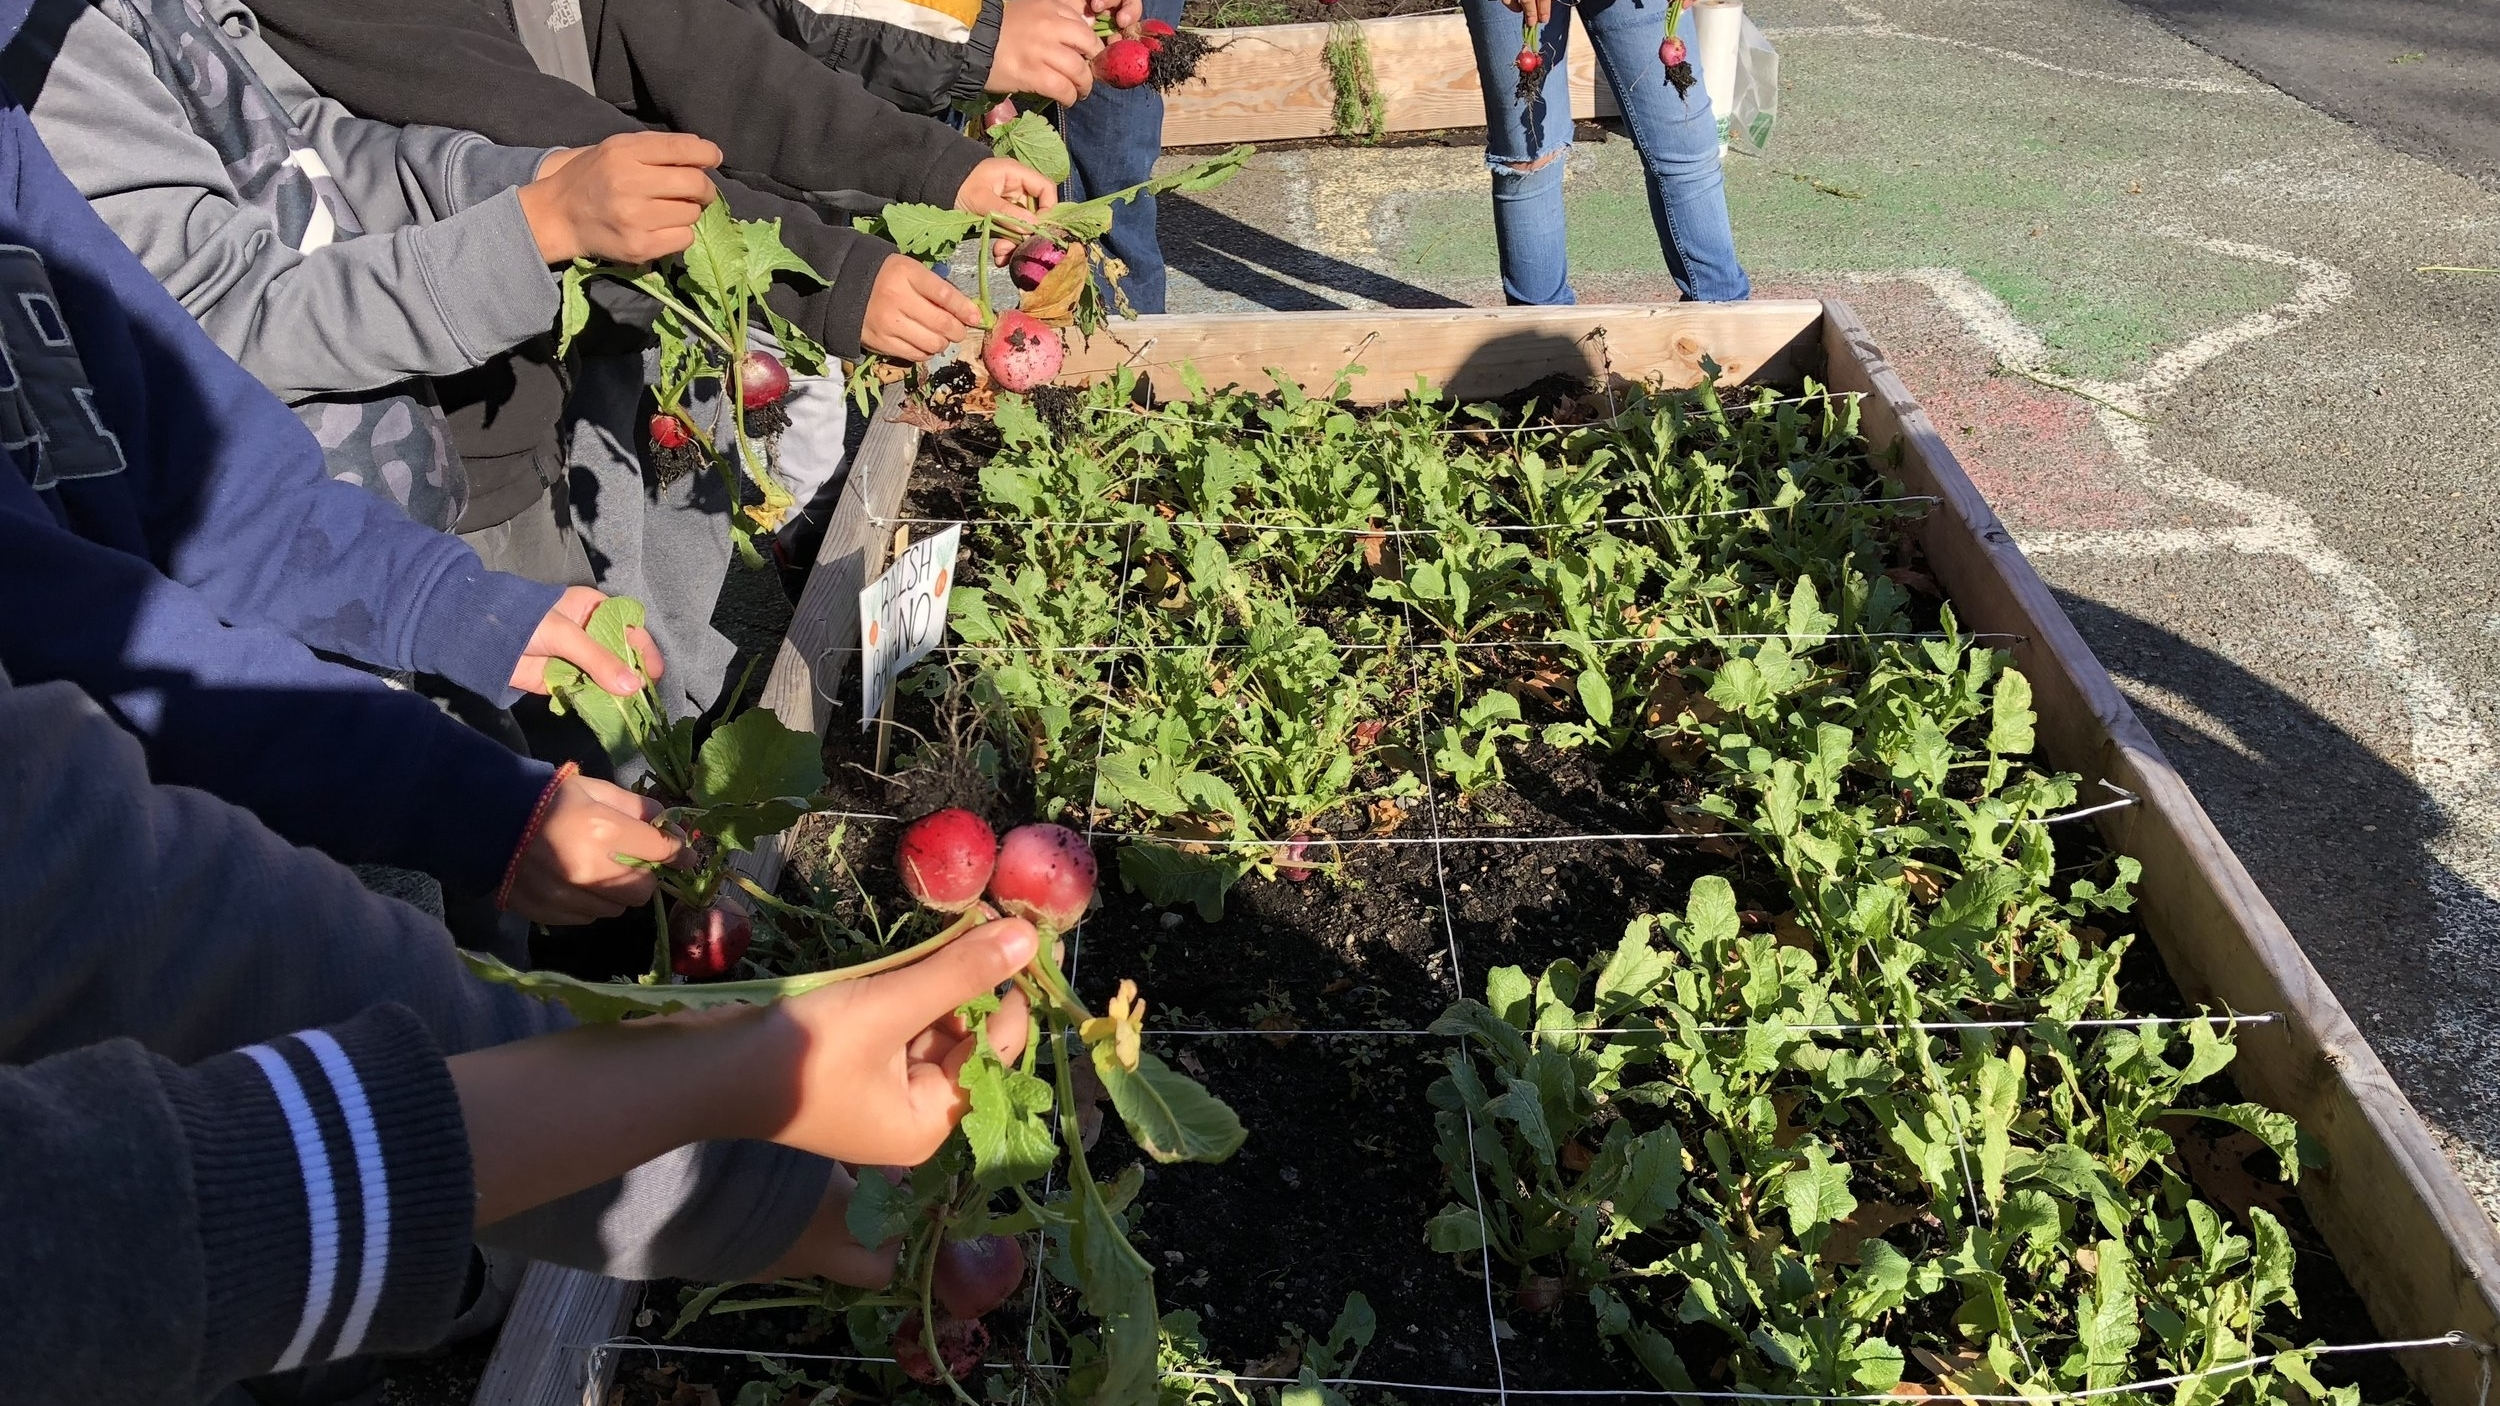 We envision a place and culture where residents of Lynn have access to the resources needed to make healthy decisions around their food choices.